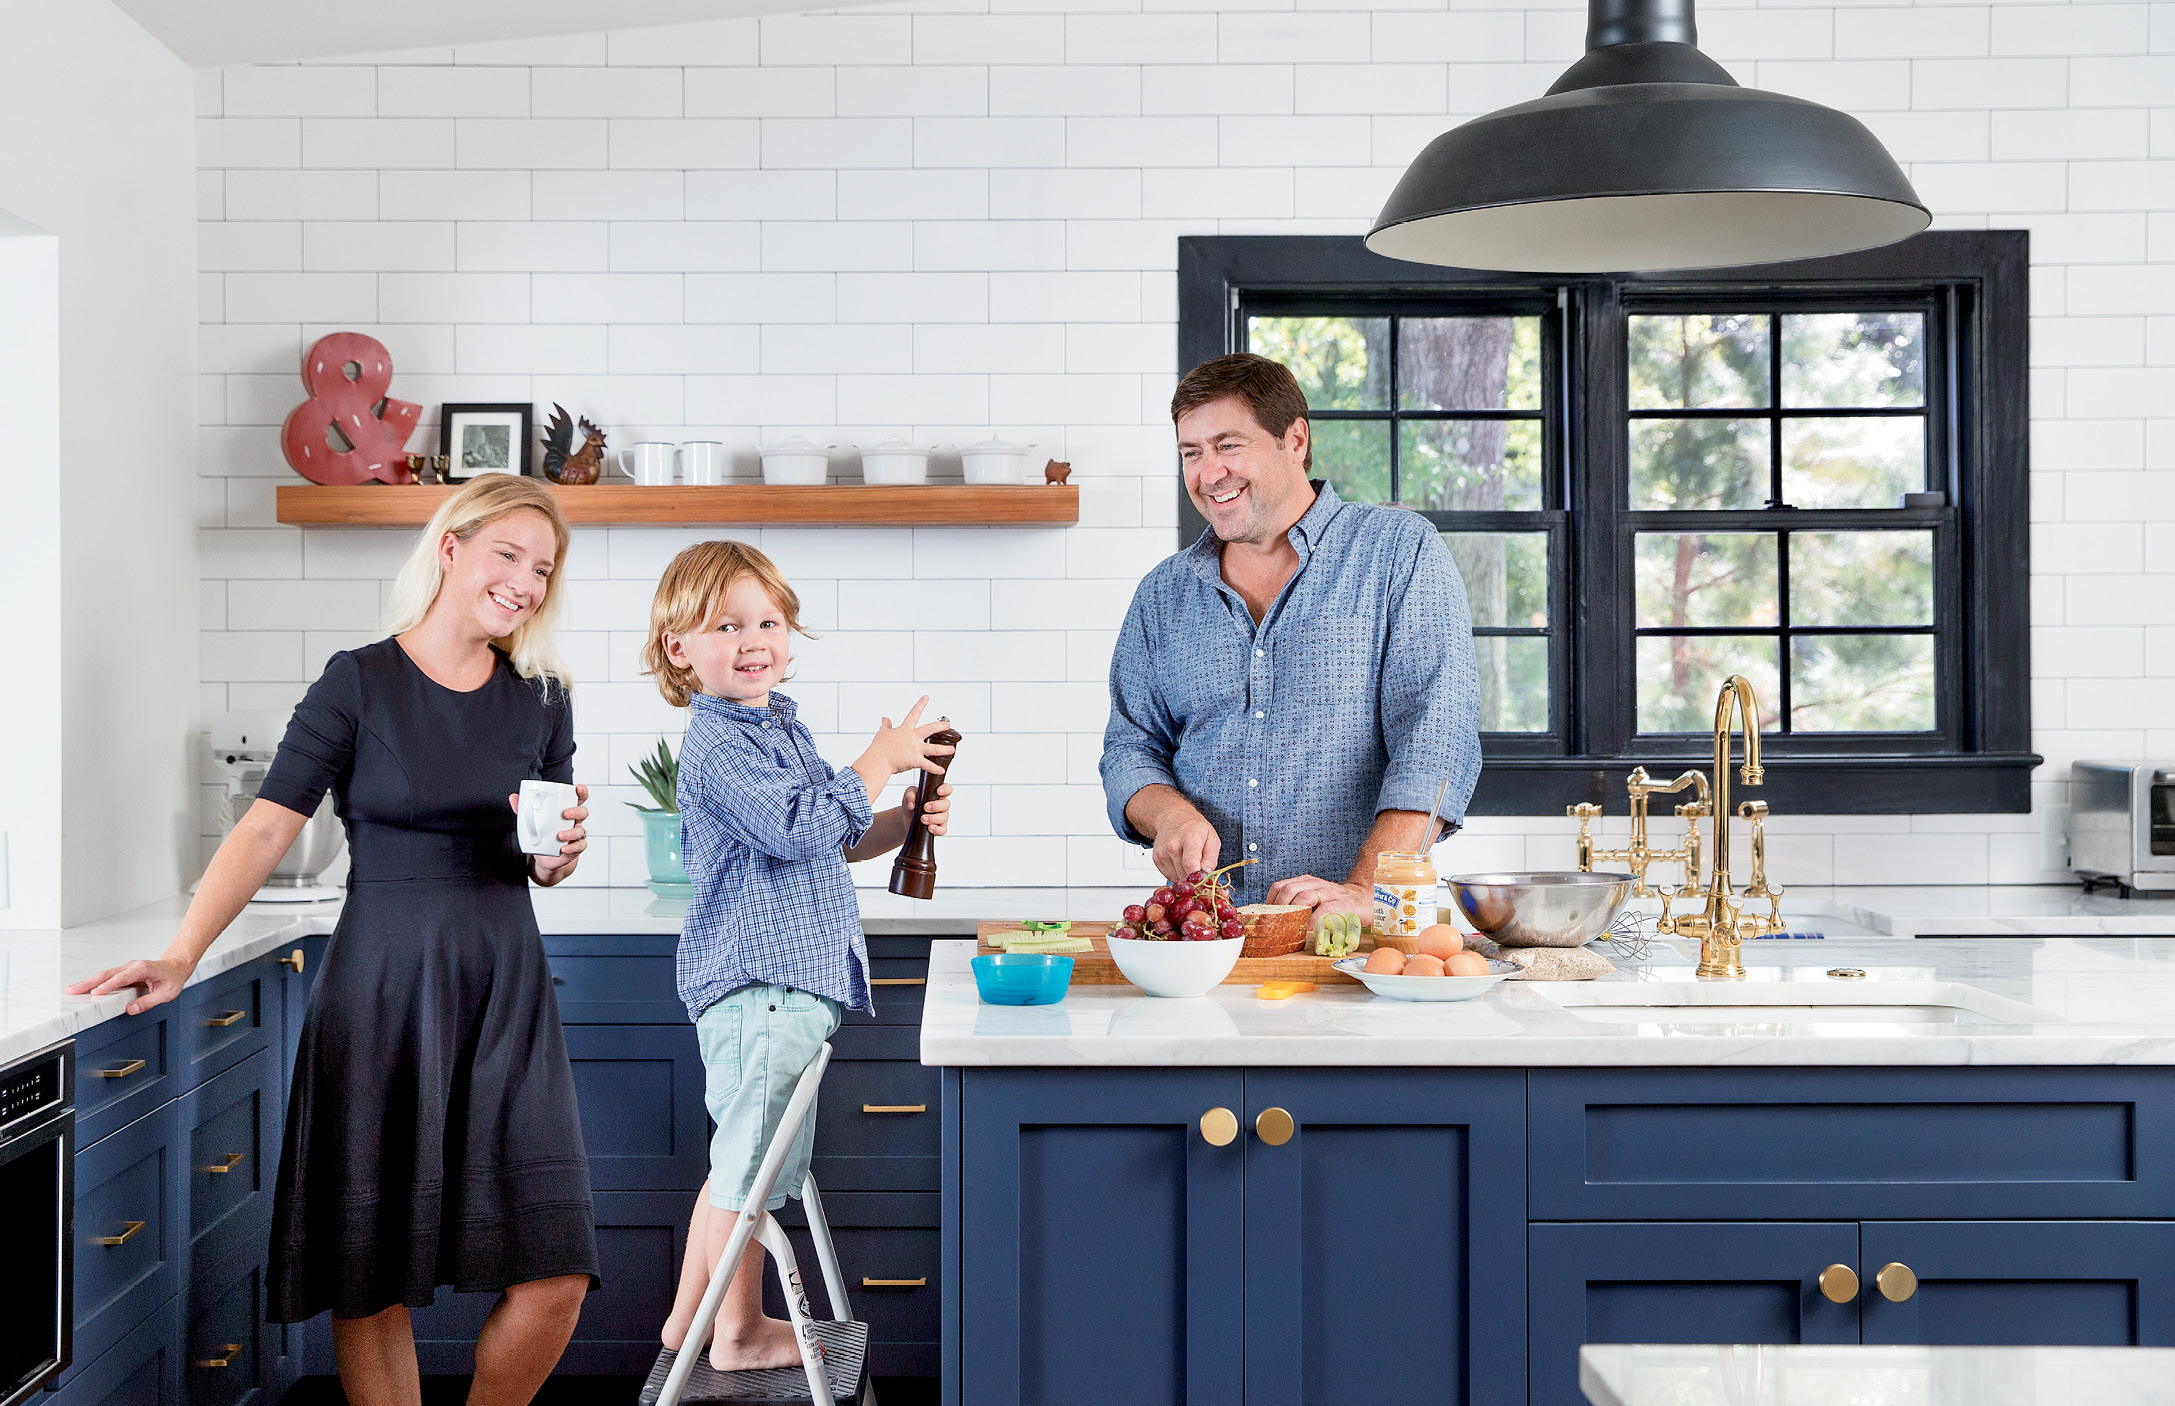 family style: When Mike and Emilee Lata bought the centuries-old abode, the kitchen was outdated, with low ceilings and a lack of natural light. The couple (pictured here with son Henry) worked with David Thompson Architects and Renew Urban to take the cooking space down to the studs and redesign it with a luxe farmhouse vibe.